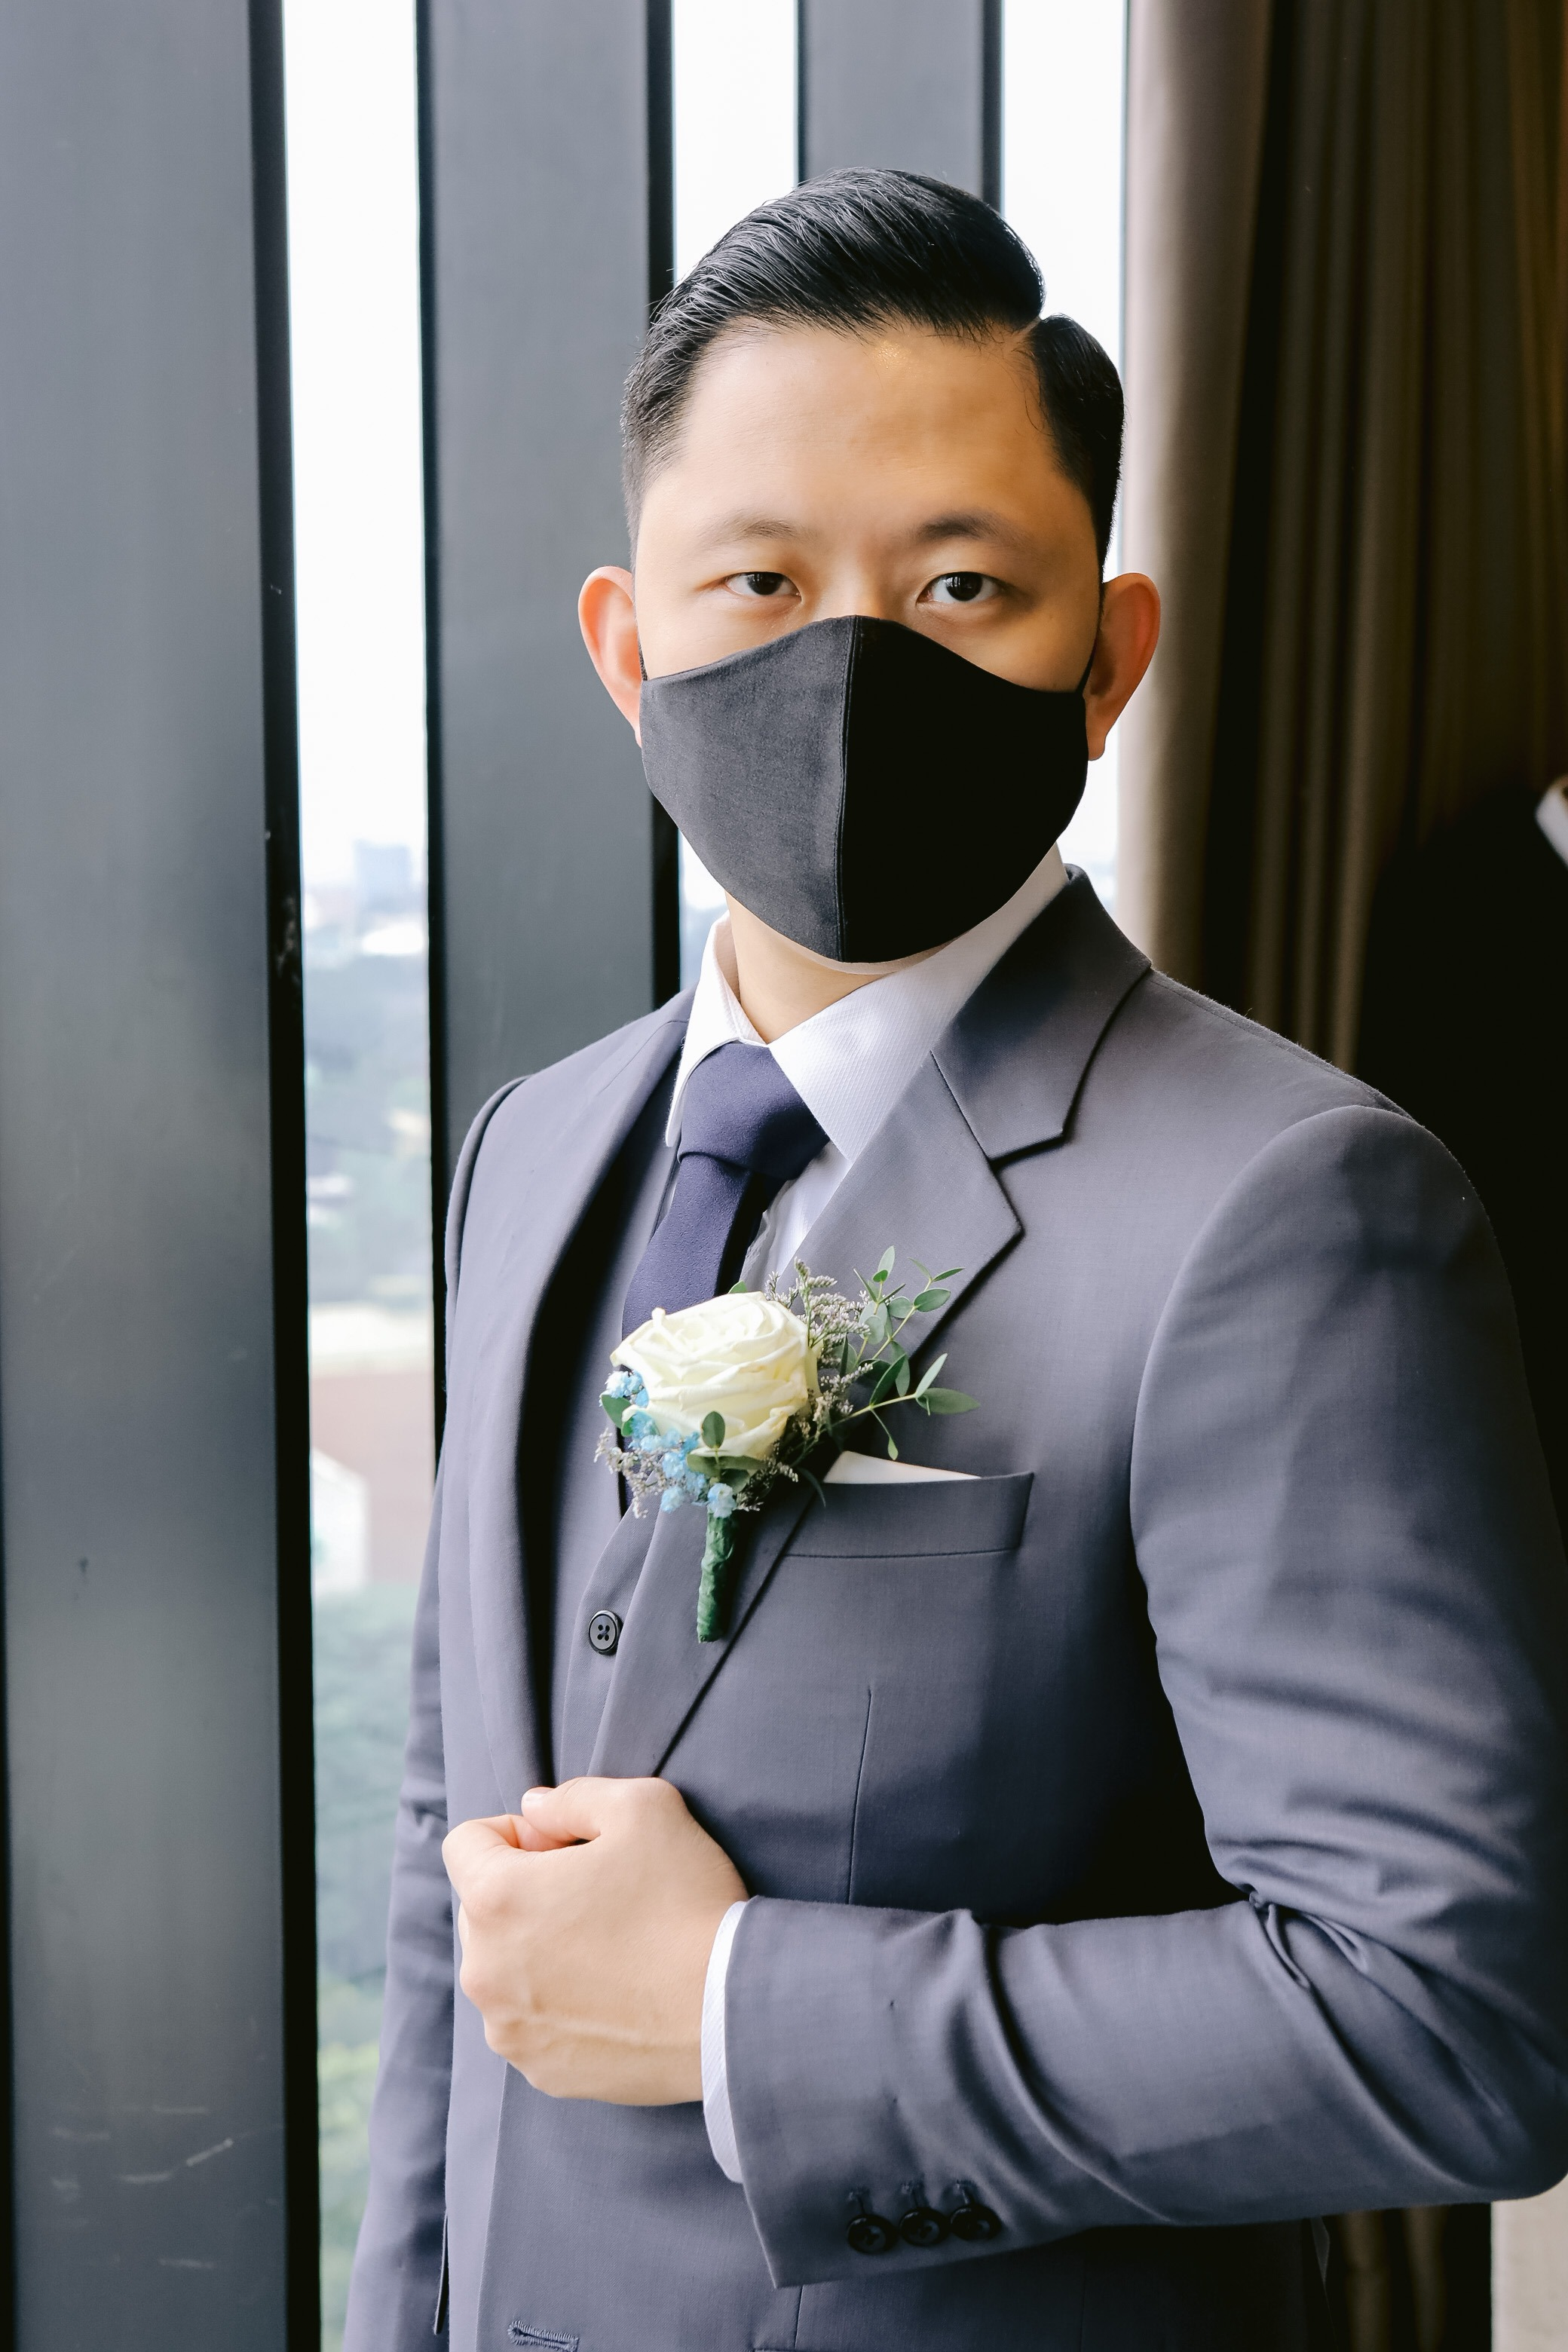 The Careful Groom. Captured by Smart Shot Studio.